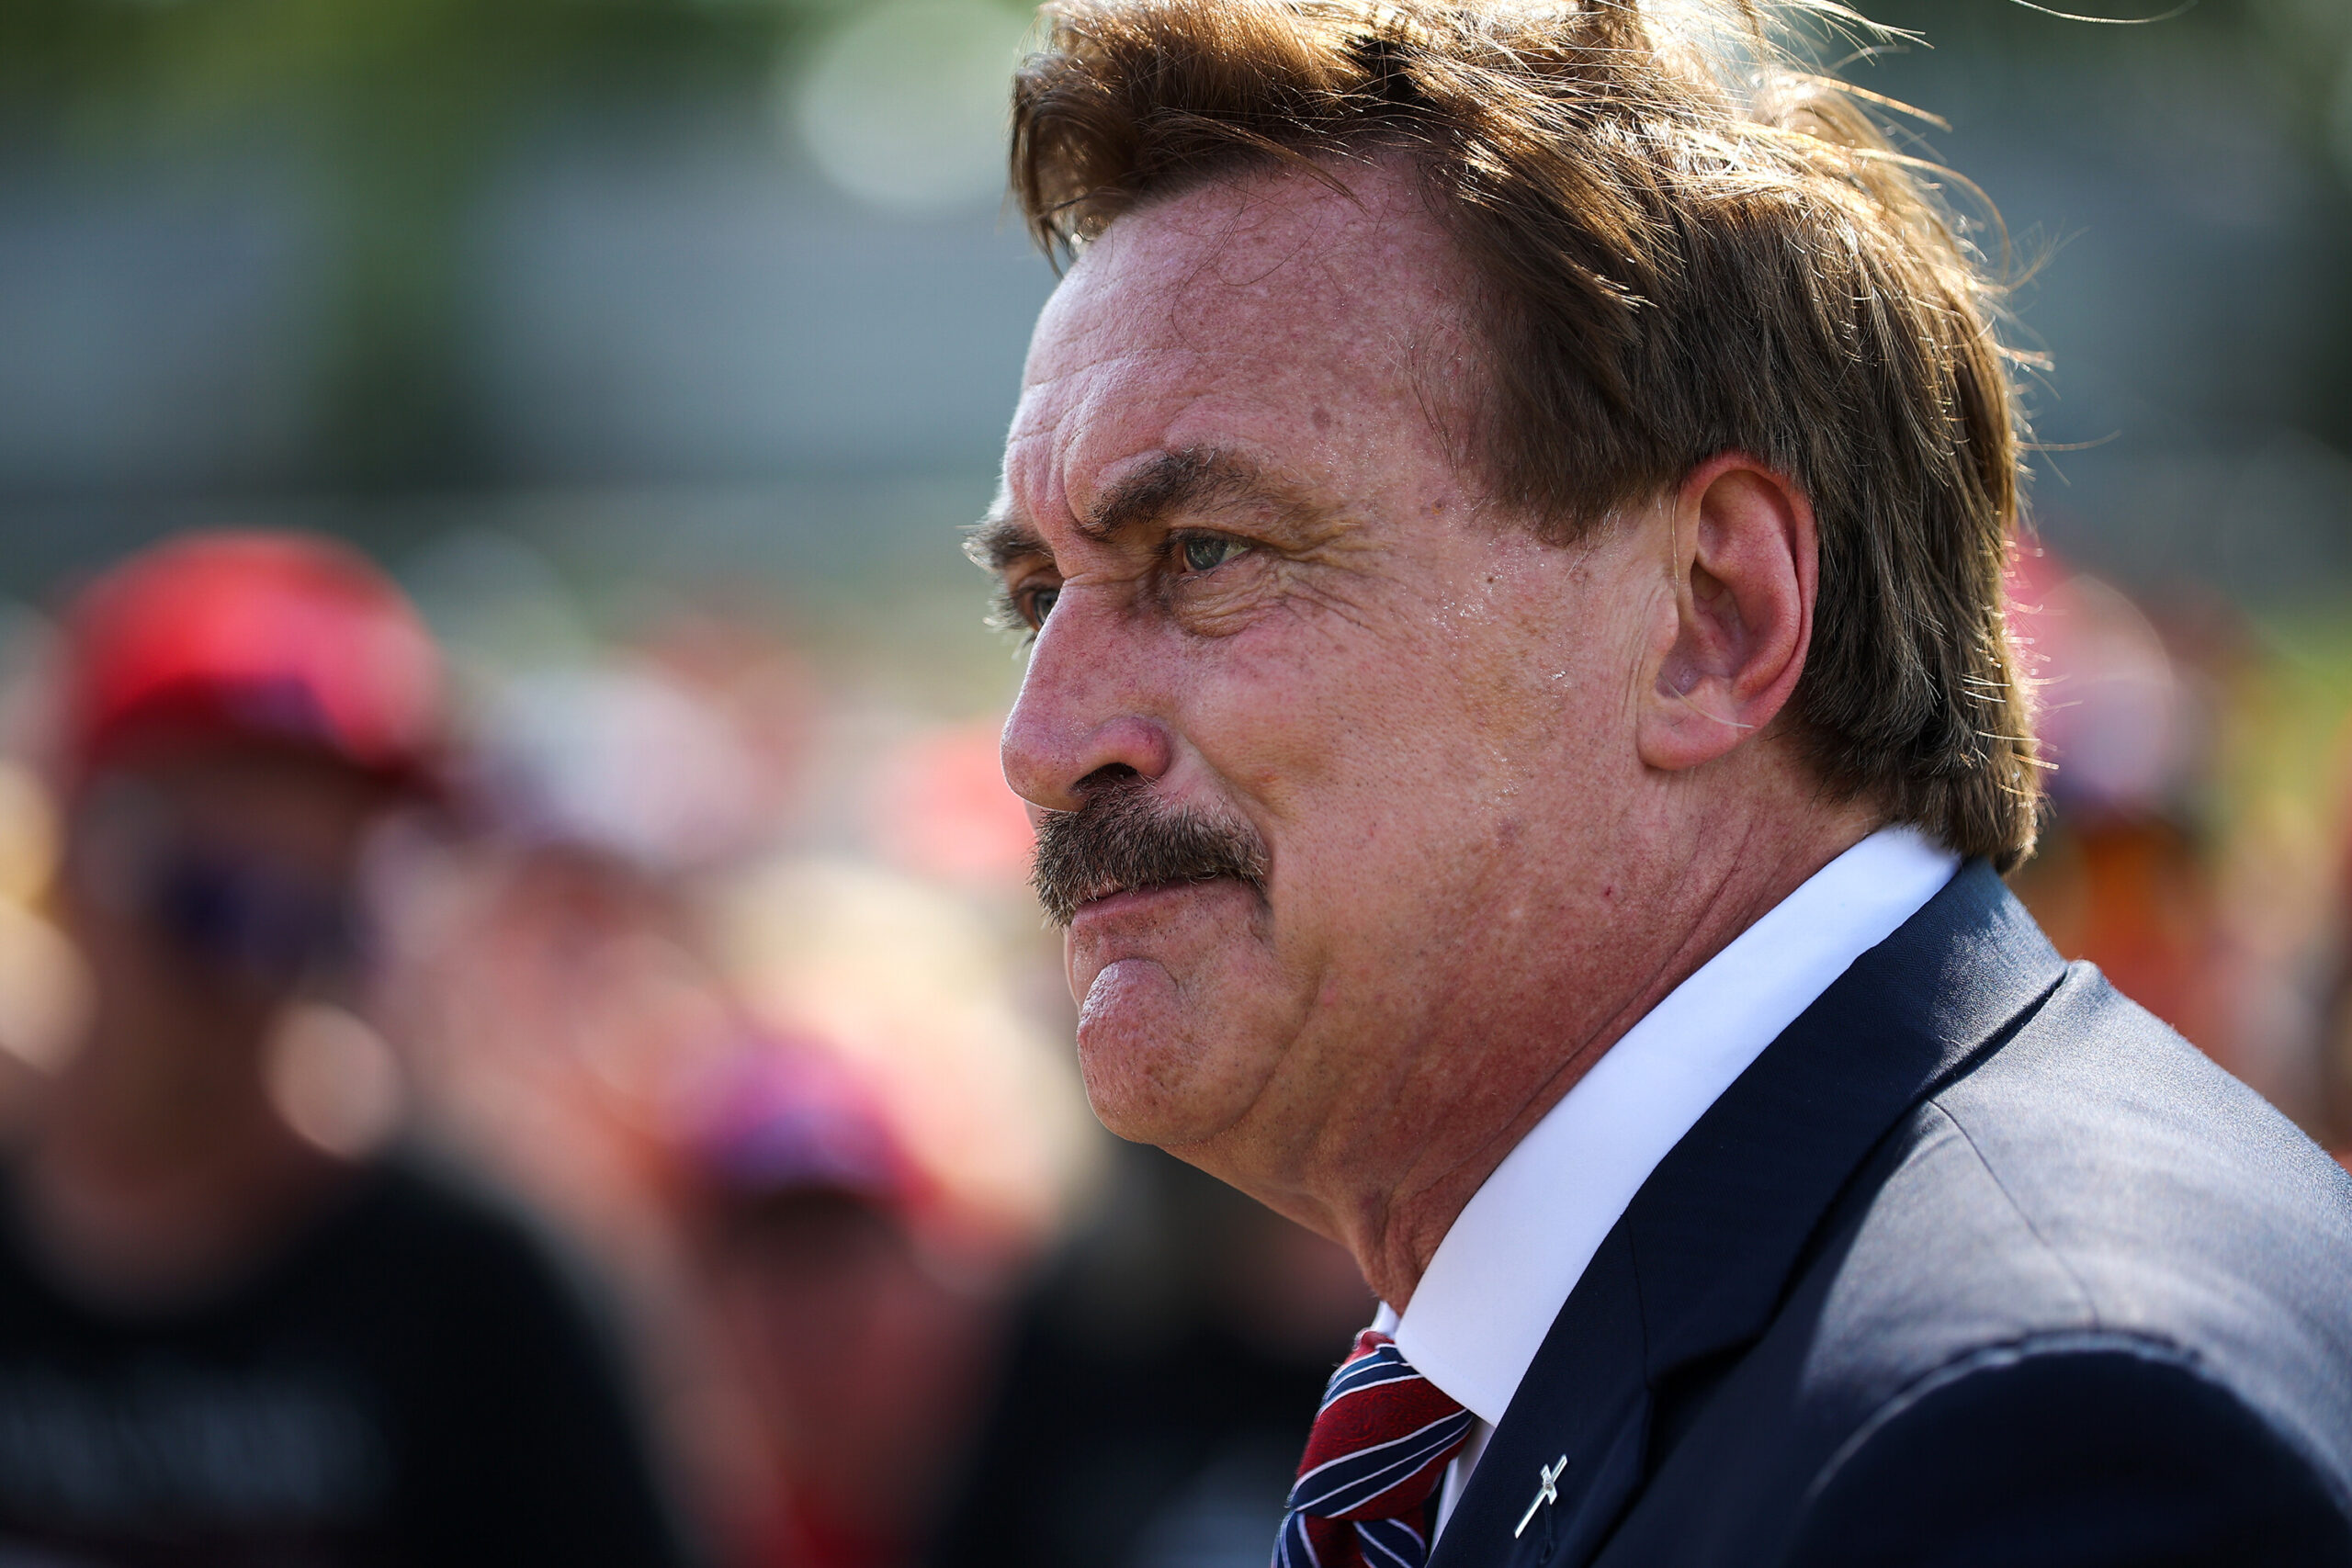 <i>Tayfun Coskun/Anadolu Agency/Getty Images</i><br/>On Thursday Mike Lindell told the Wall Street Journal that he is pulling his pillow ads from Fox. Lindell known also as